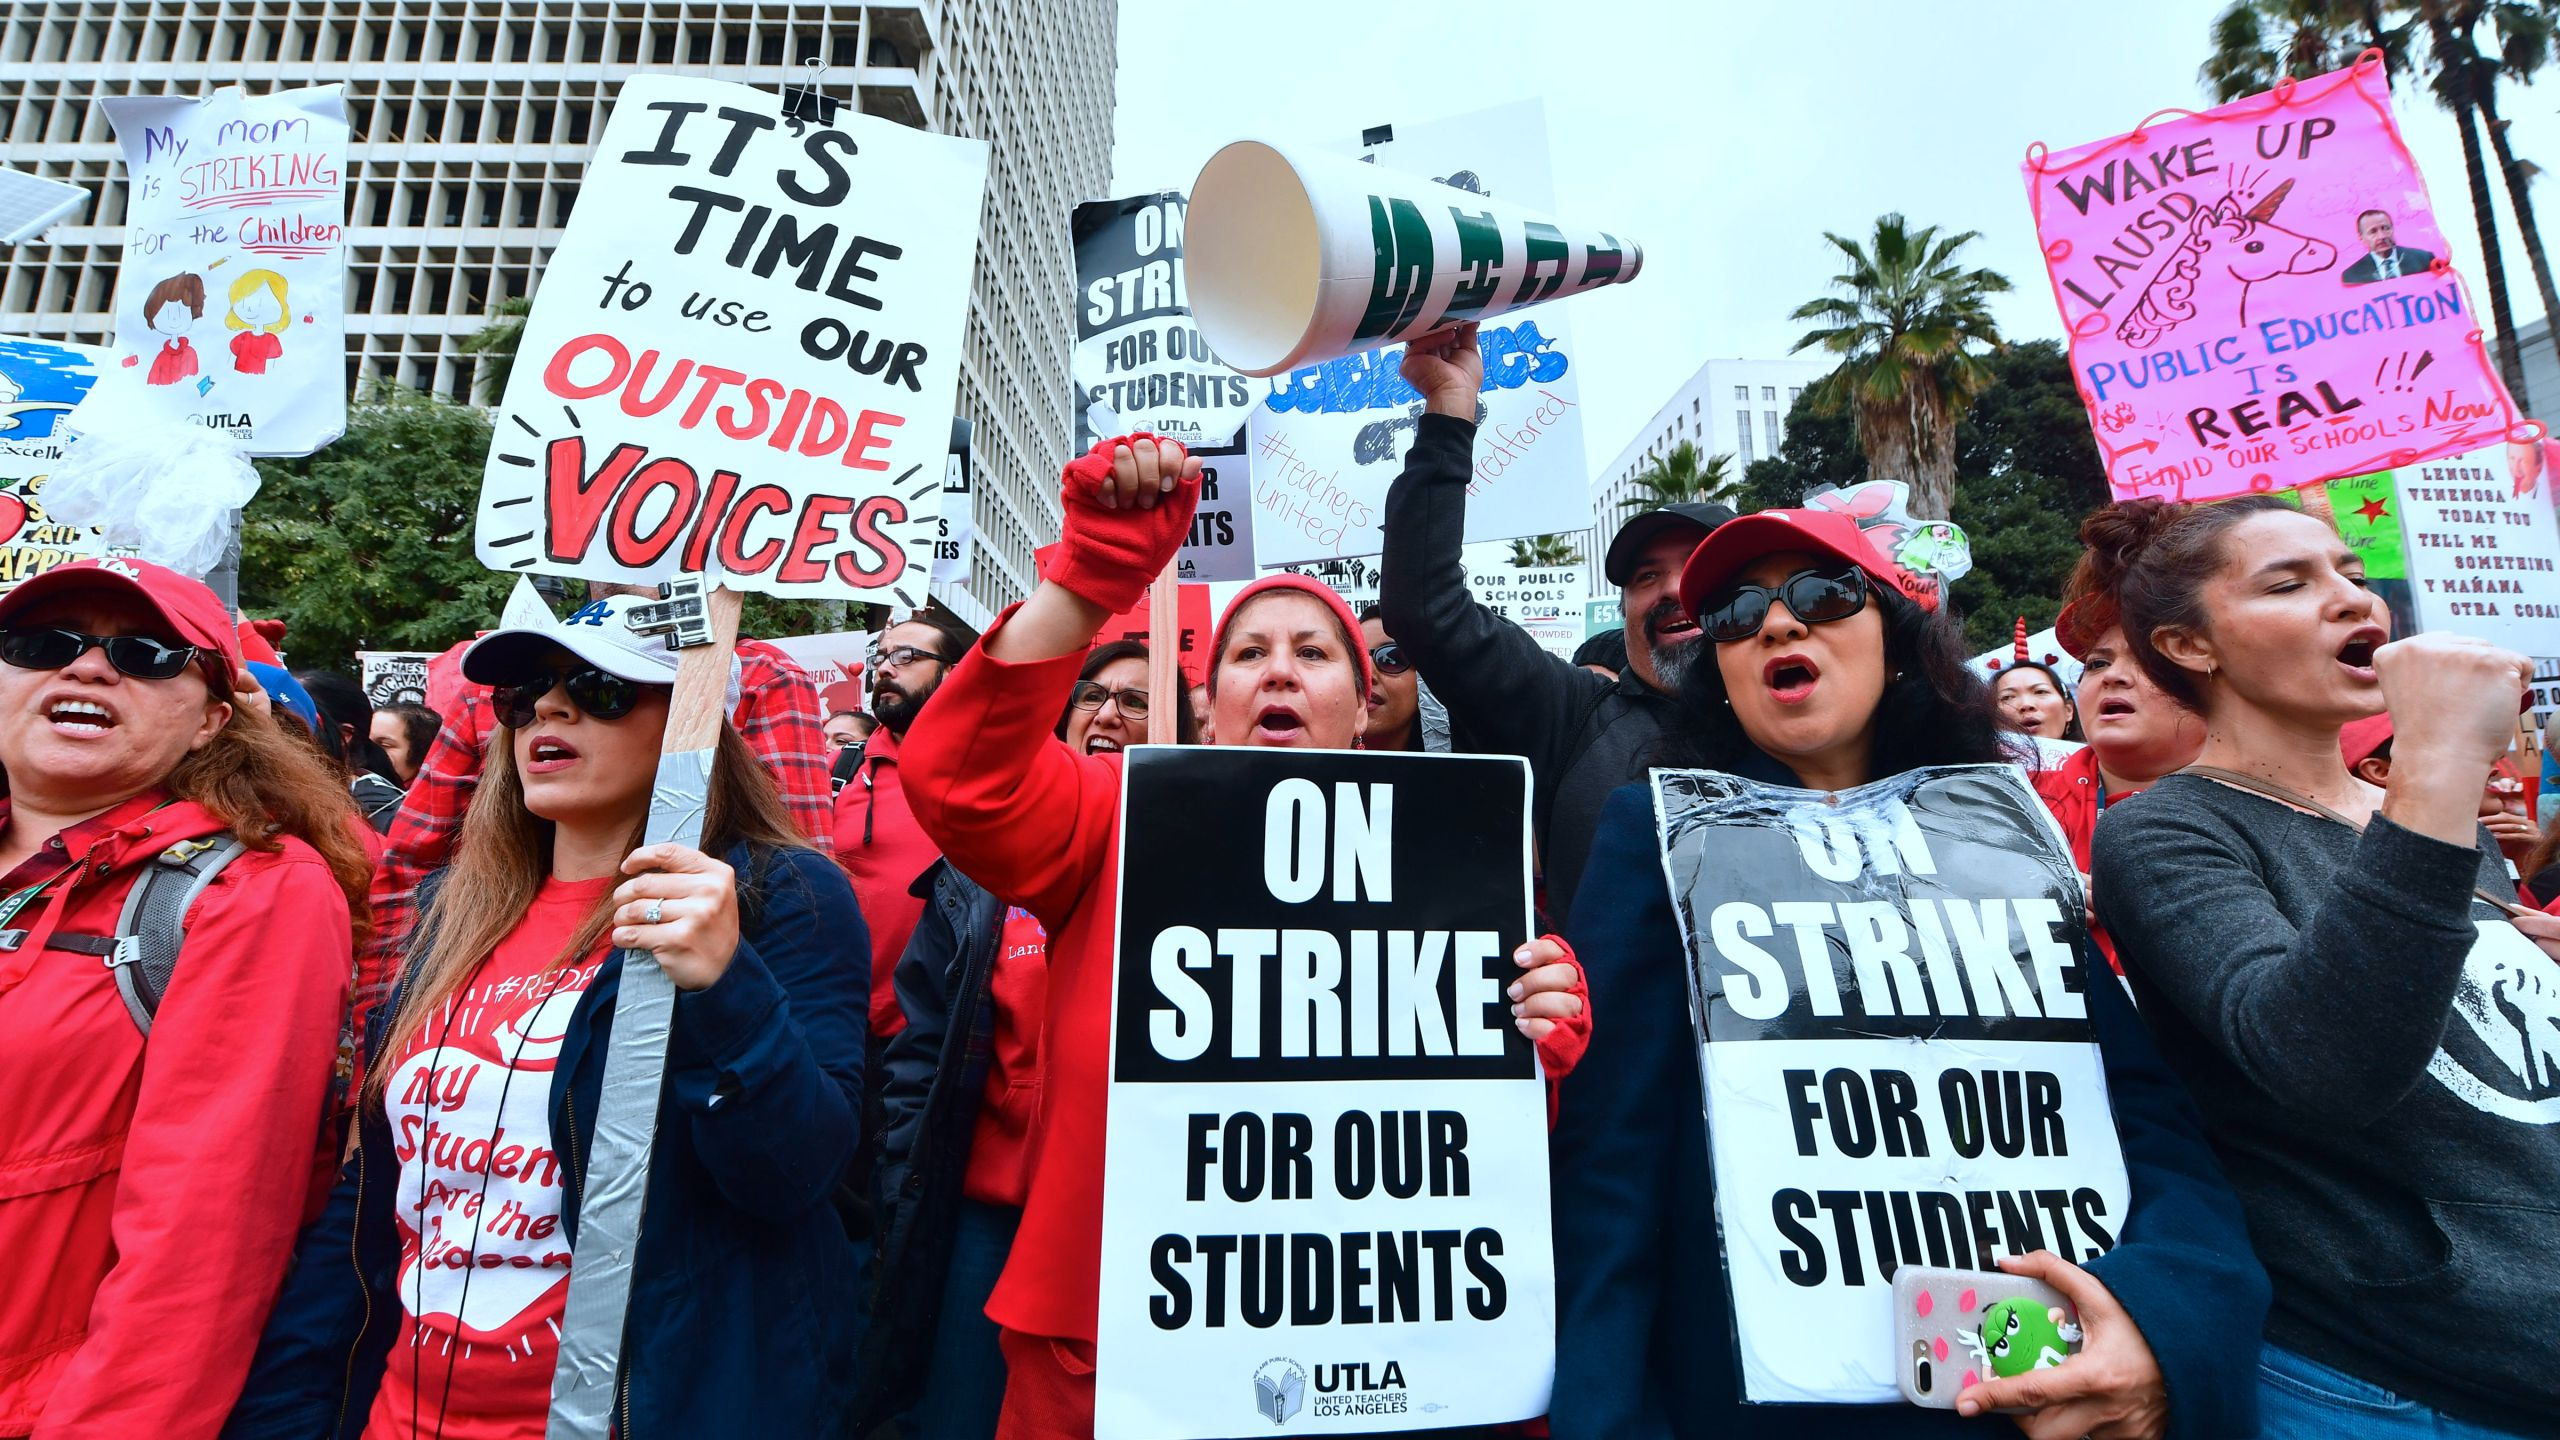 Thousands of teachers from the Los Angeles Unified School District and their supporters rally outside City Hall in Los Angeles on Jan. 18, 2019. (Credit: FREDERIC J. BROWN/AFP/Getty Images)